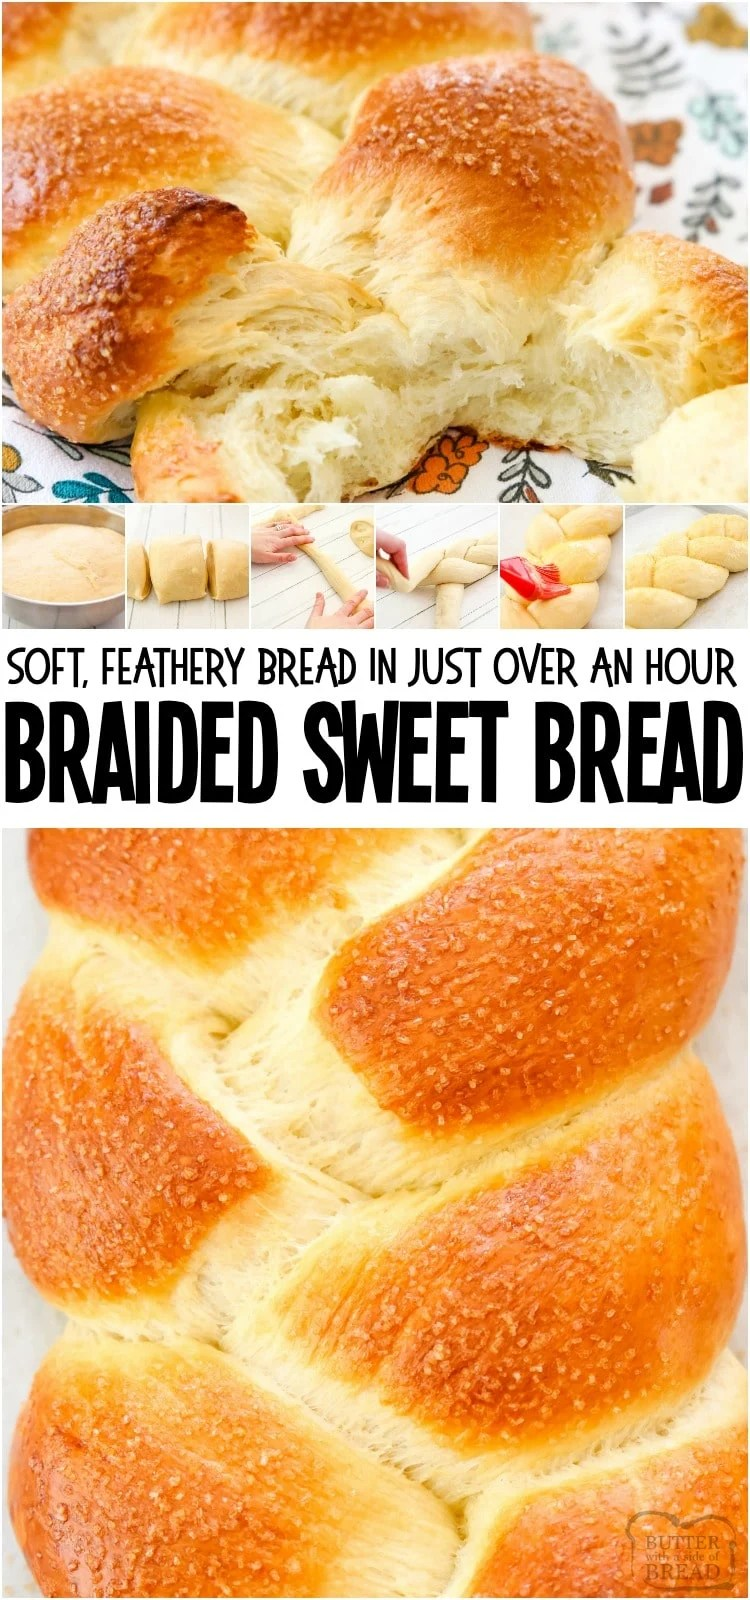 Braided sweet bread is a delicious and gorgeous homemade bread that looks as good as it tastes. With a sweetened golden top crust and fluffy bread inside, you're going to love this sweet bread recipe.